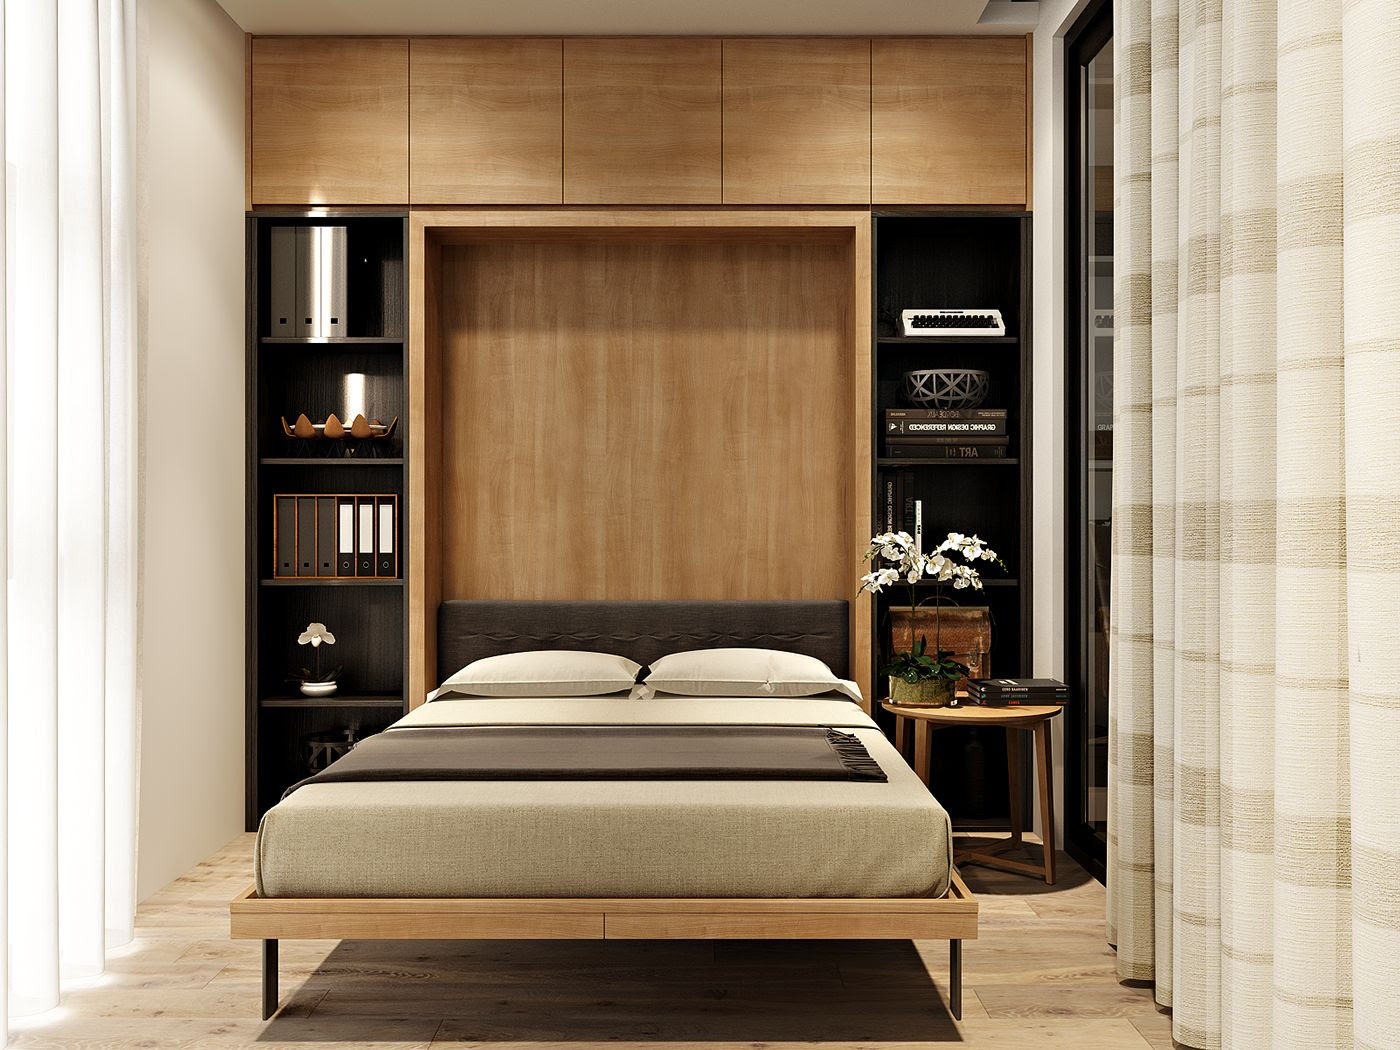 15 Creative Master Bedroom Ideas